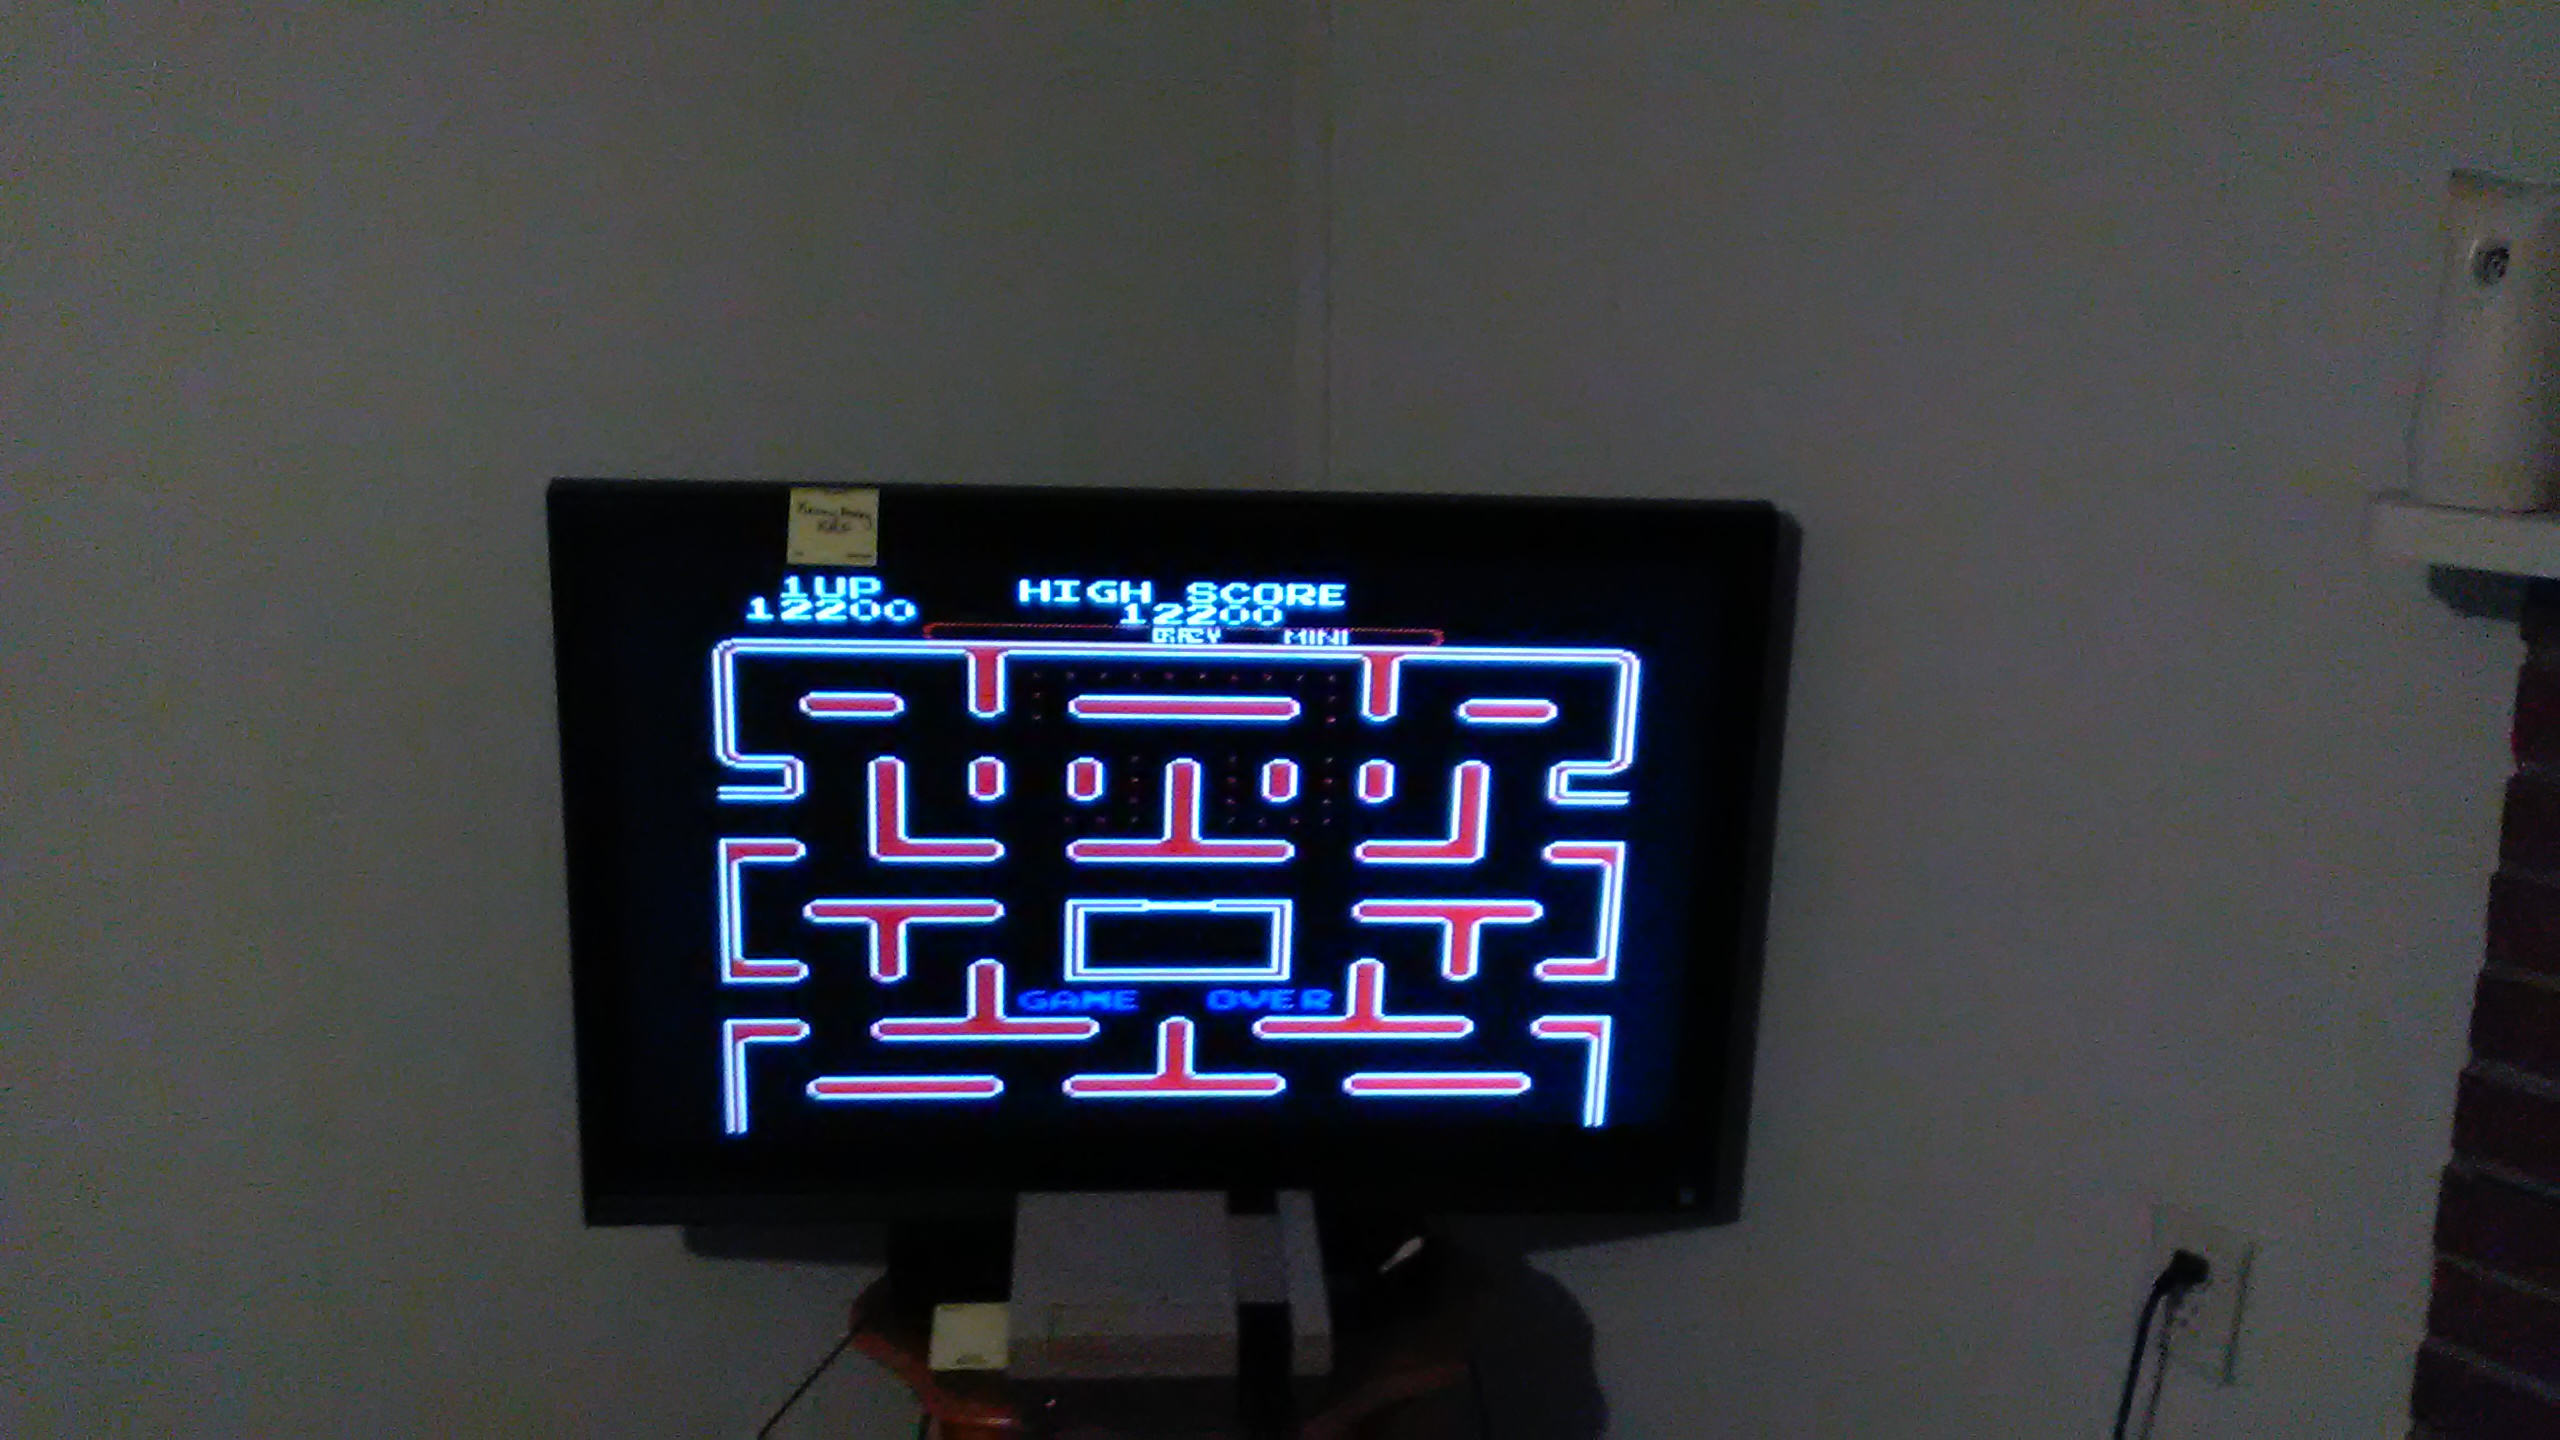 Ms. Pac-Man [Tengen] [Pac-Booster: OFF/Difficulty: Crazy/Maze Selection: Mini] 12,200 points